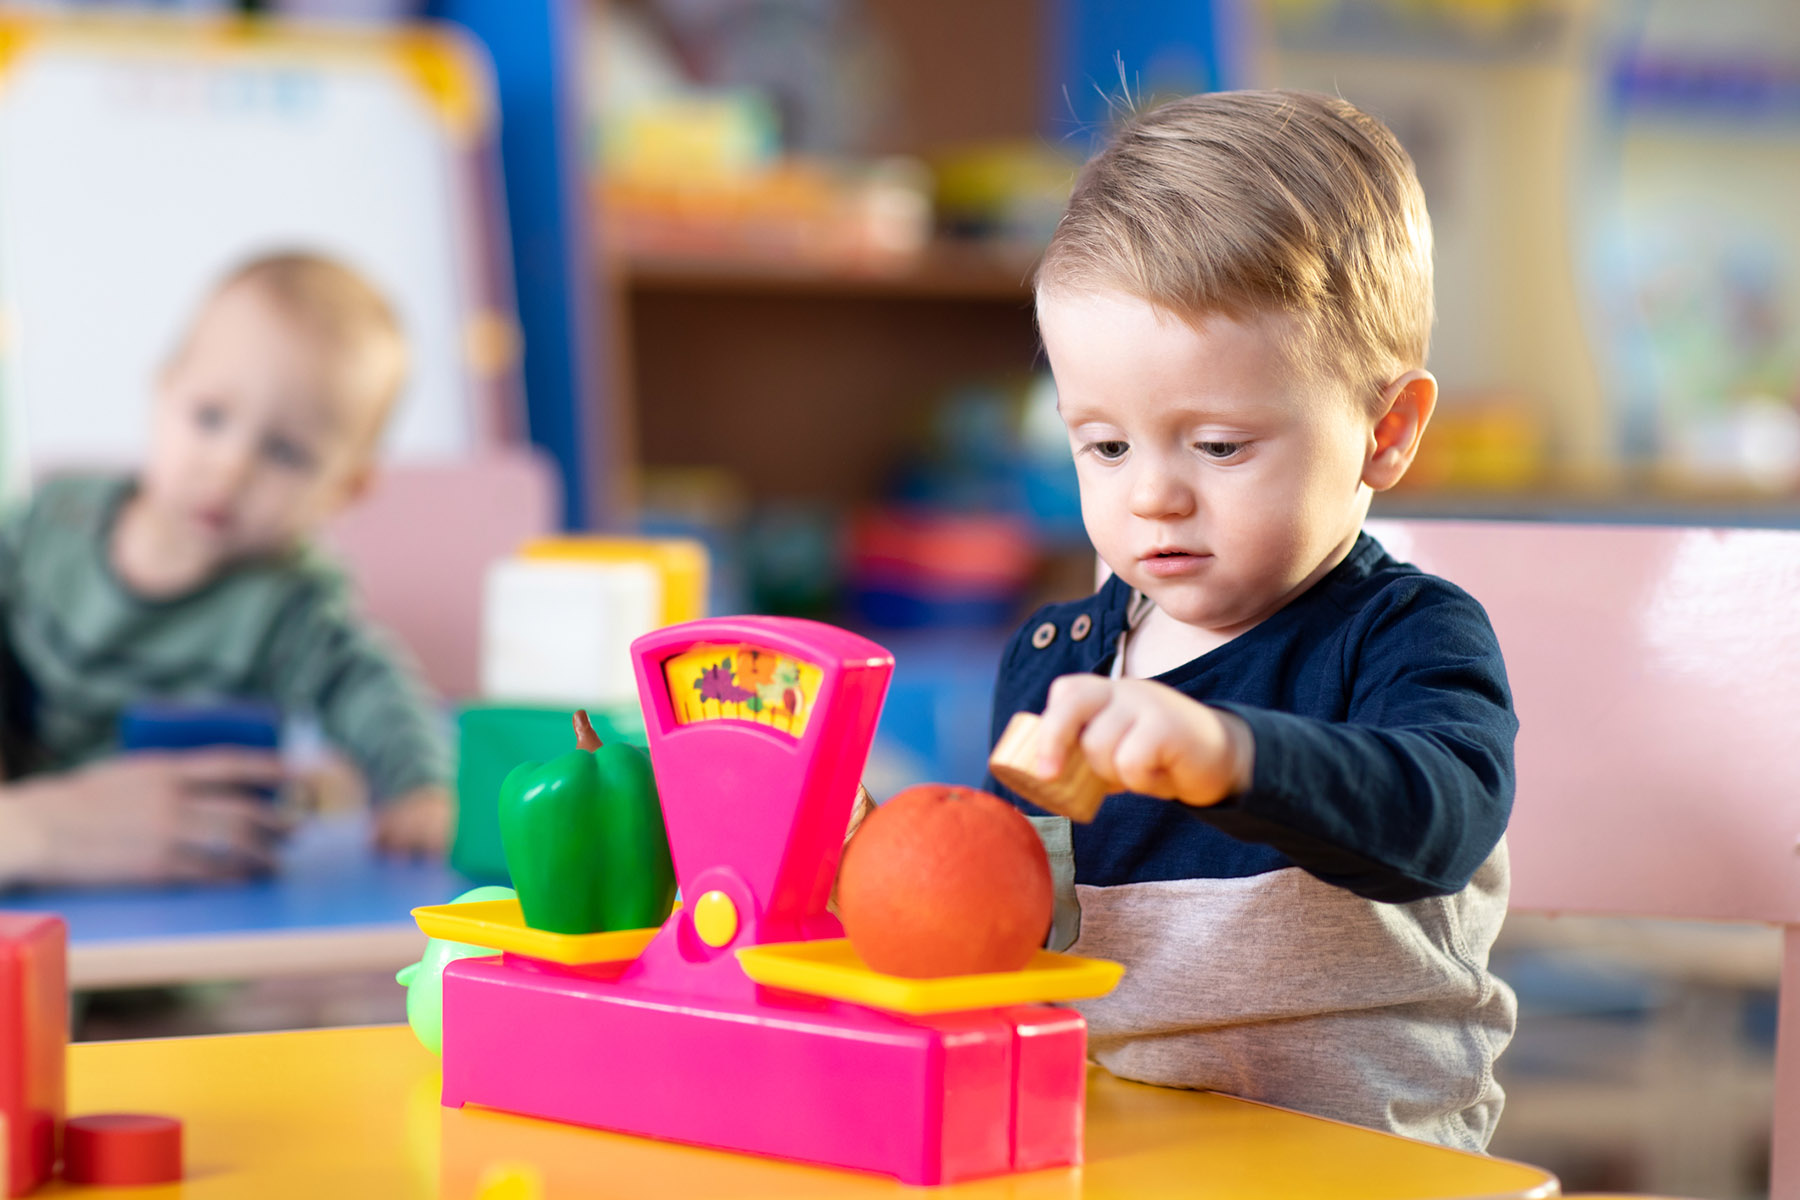 Rocking Horse Creche and Preschool | Cute little kid boy playing with abacus in nursery | Youghal, Cork